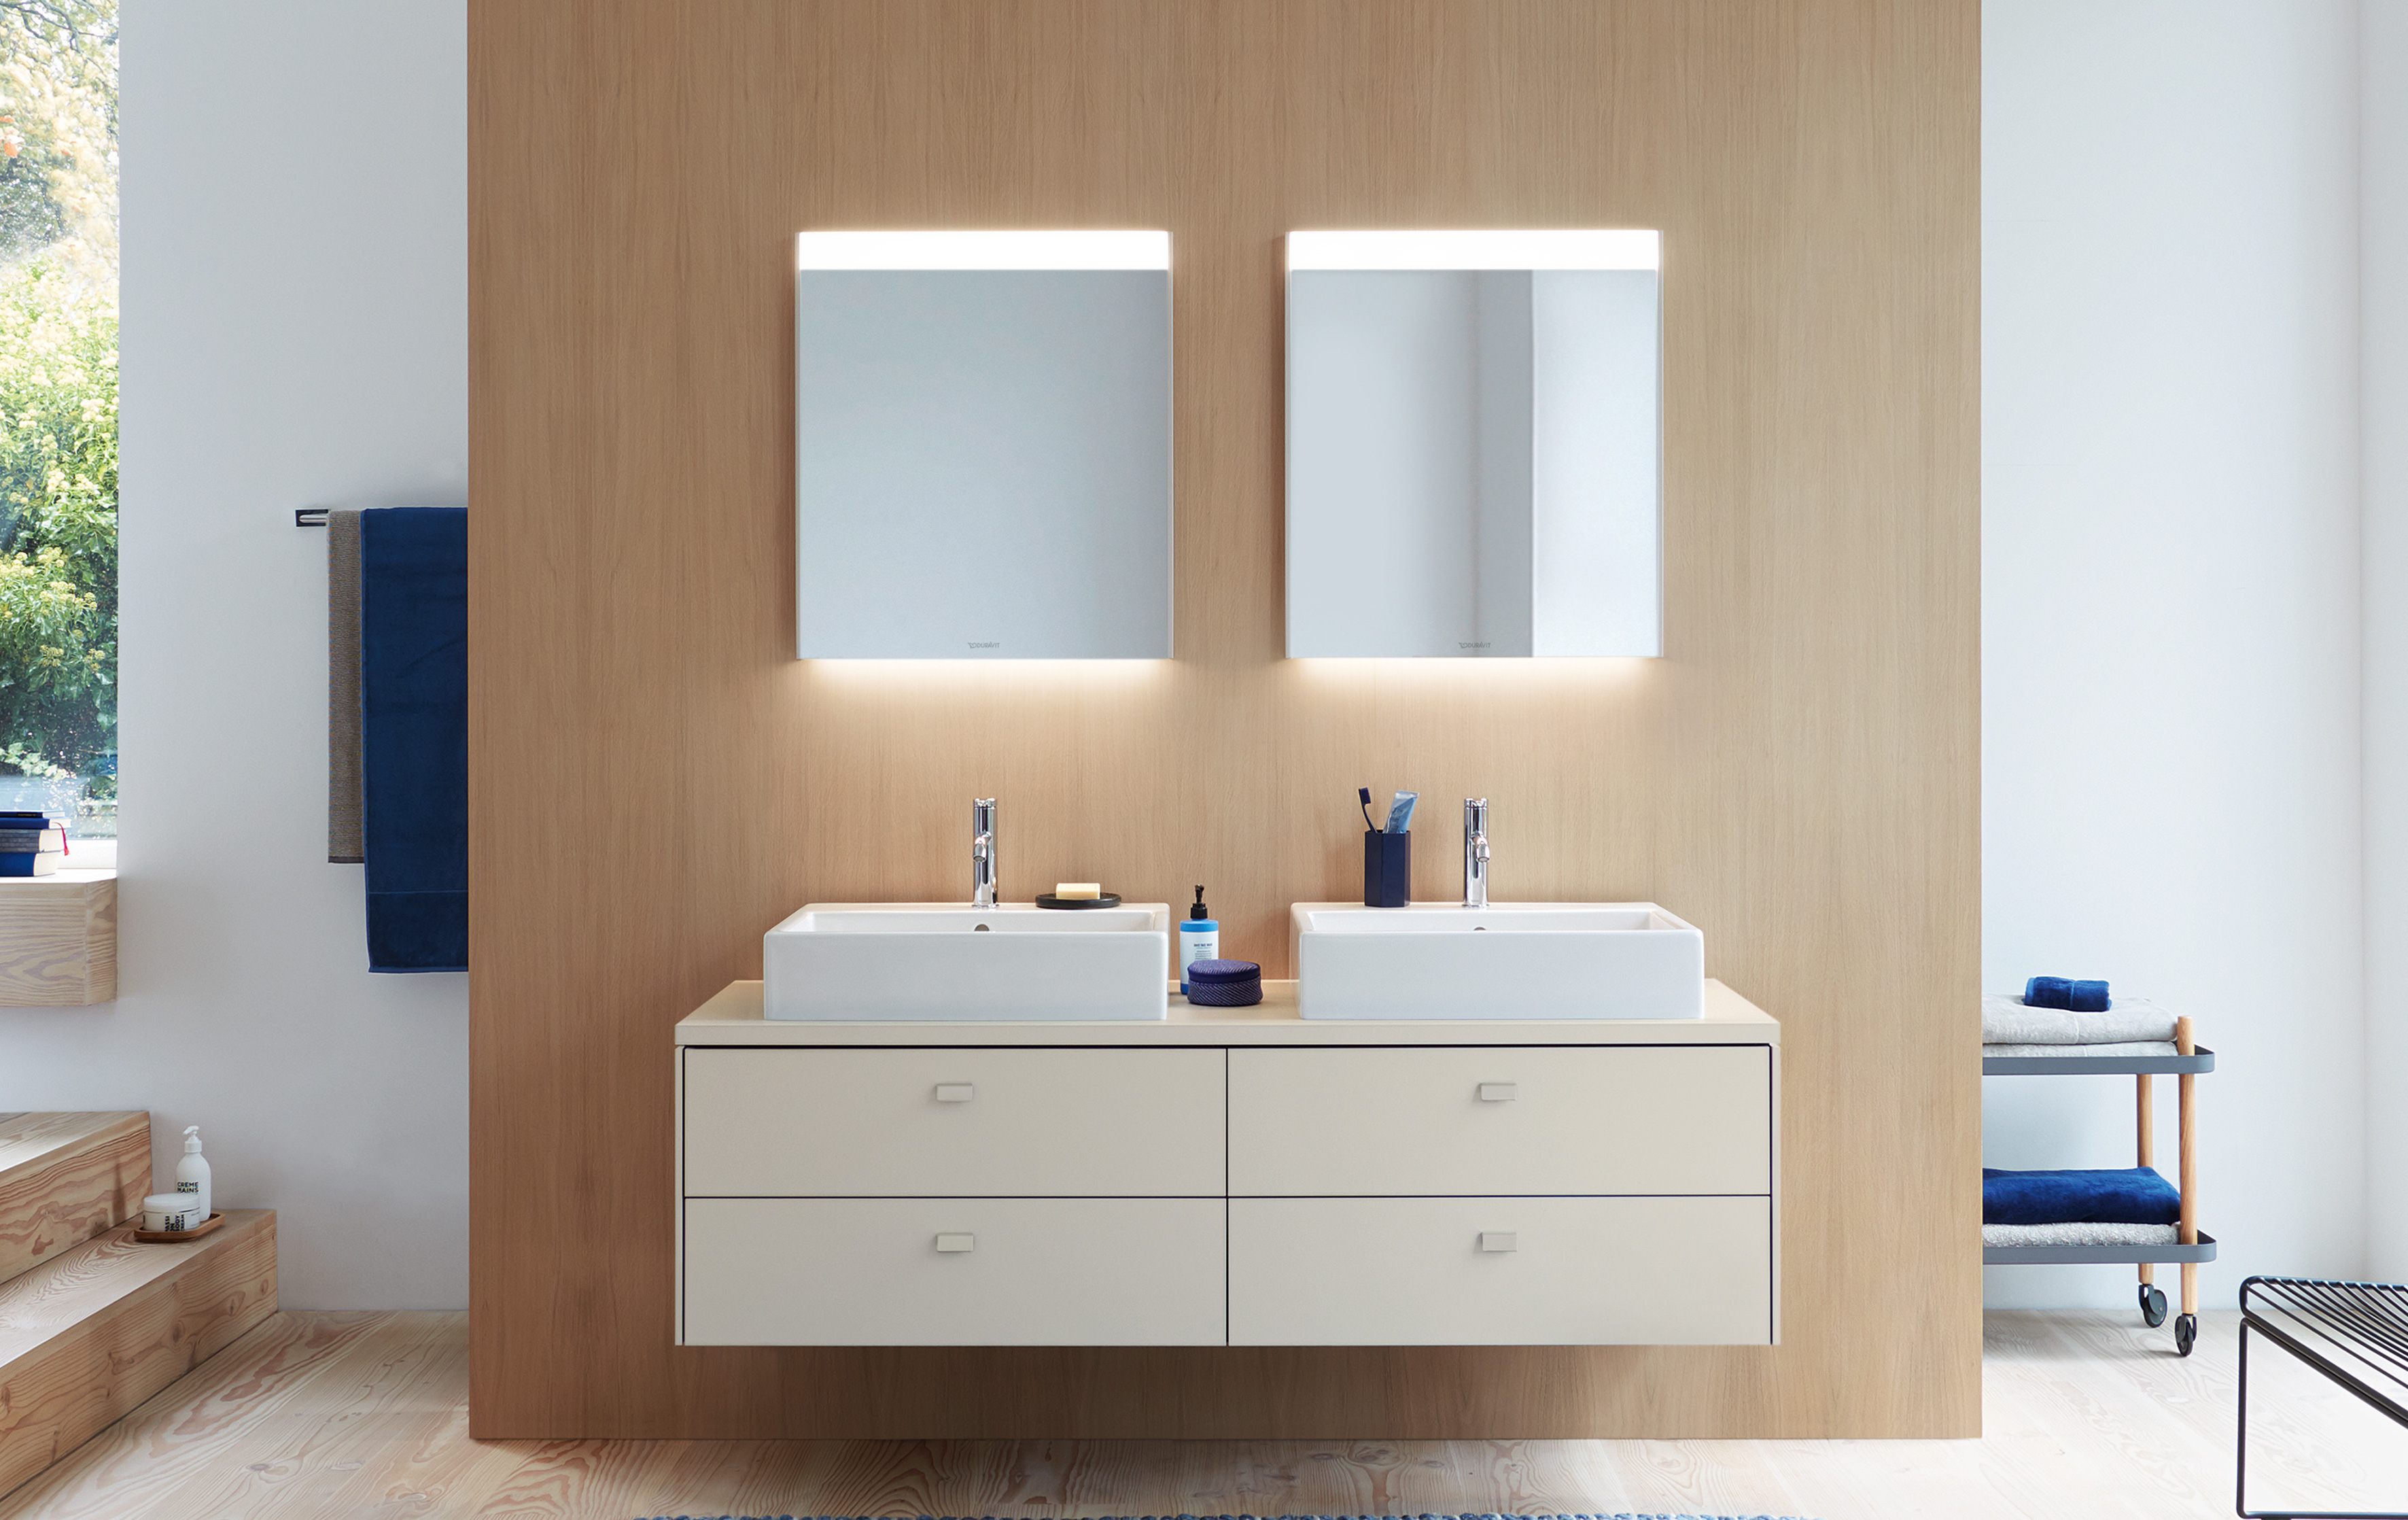 Brioso For Greater Individuality In The Bathroom.